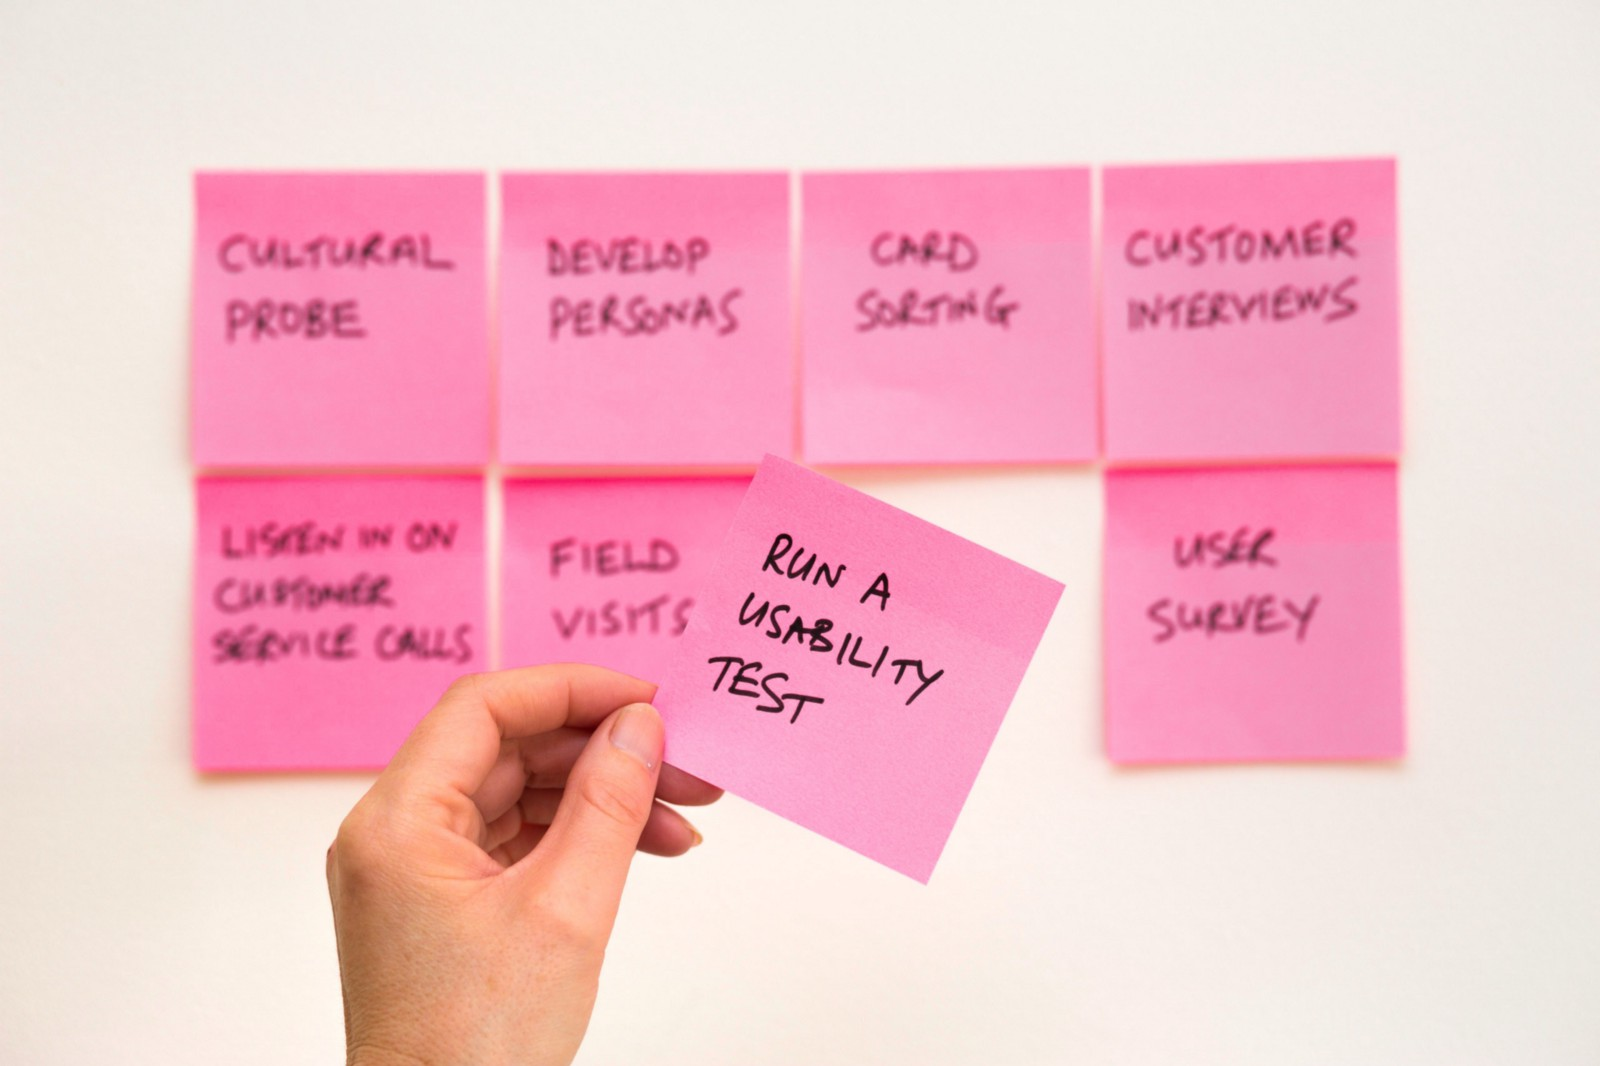 Customer Journey Mapping in 3 Steps